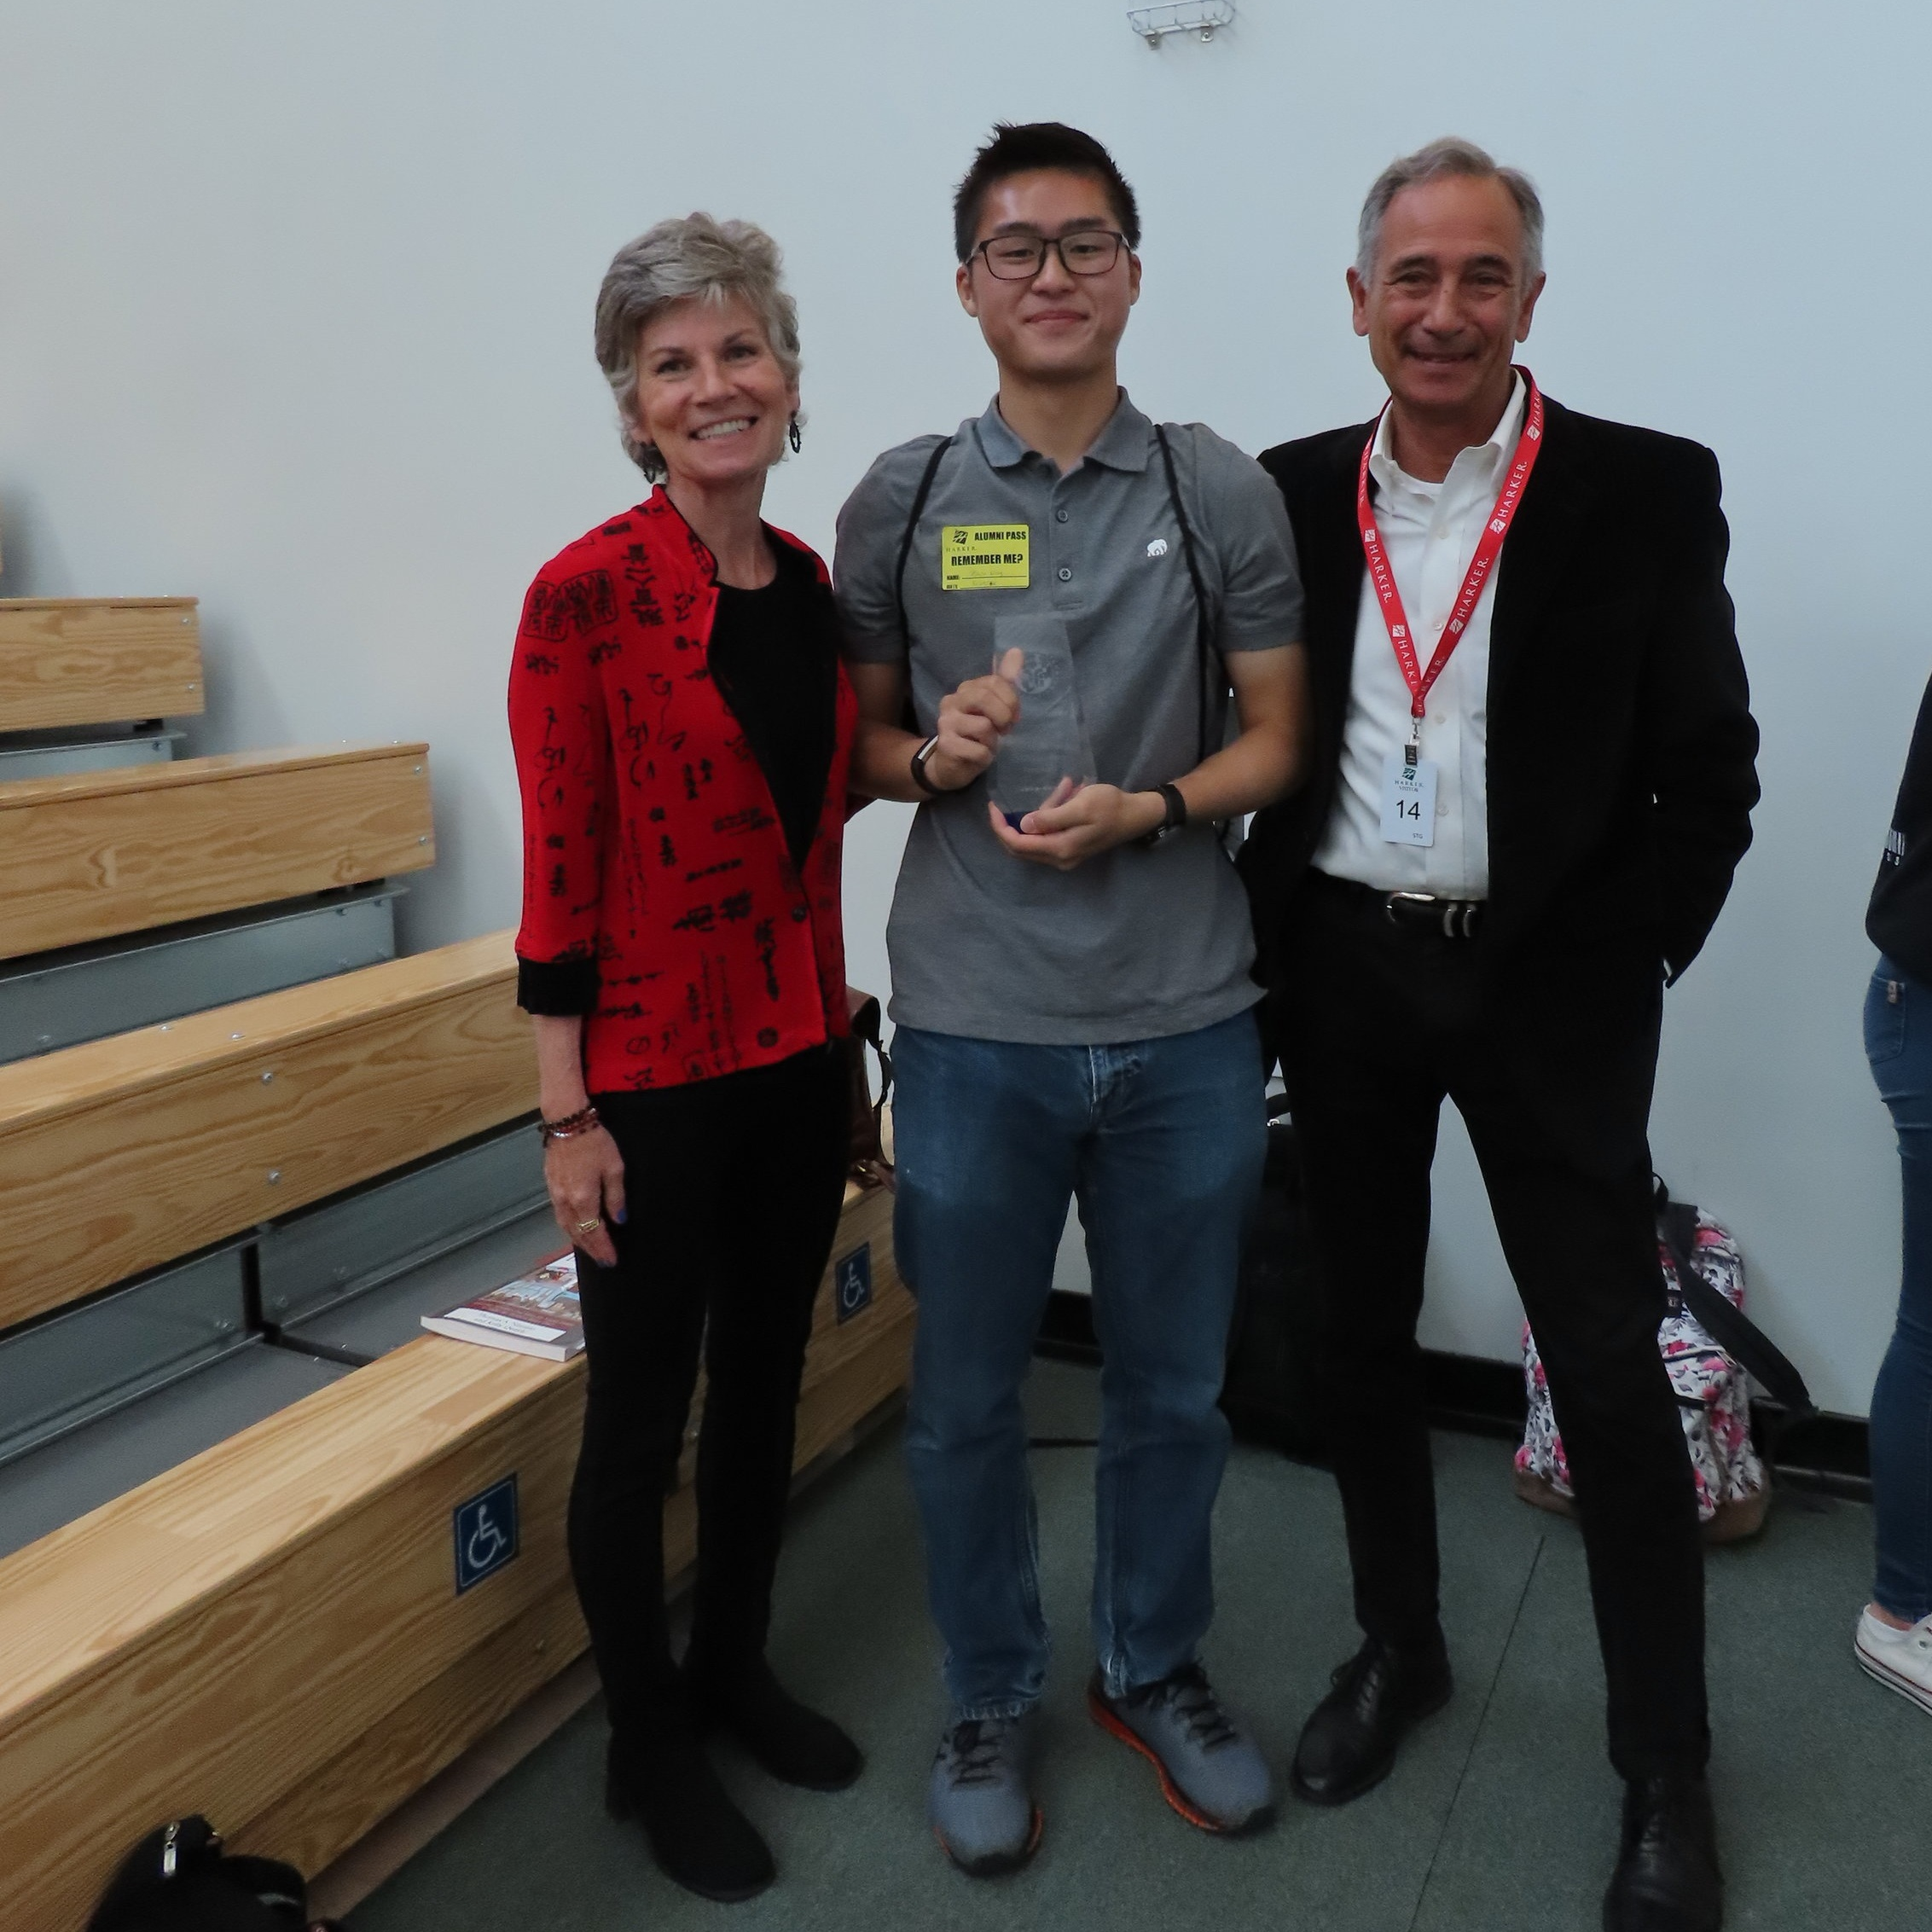 Kristina and Tom, from TFI, present Zachary (center) with his award